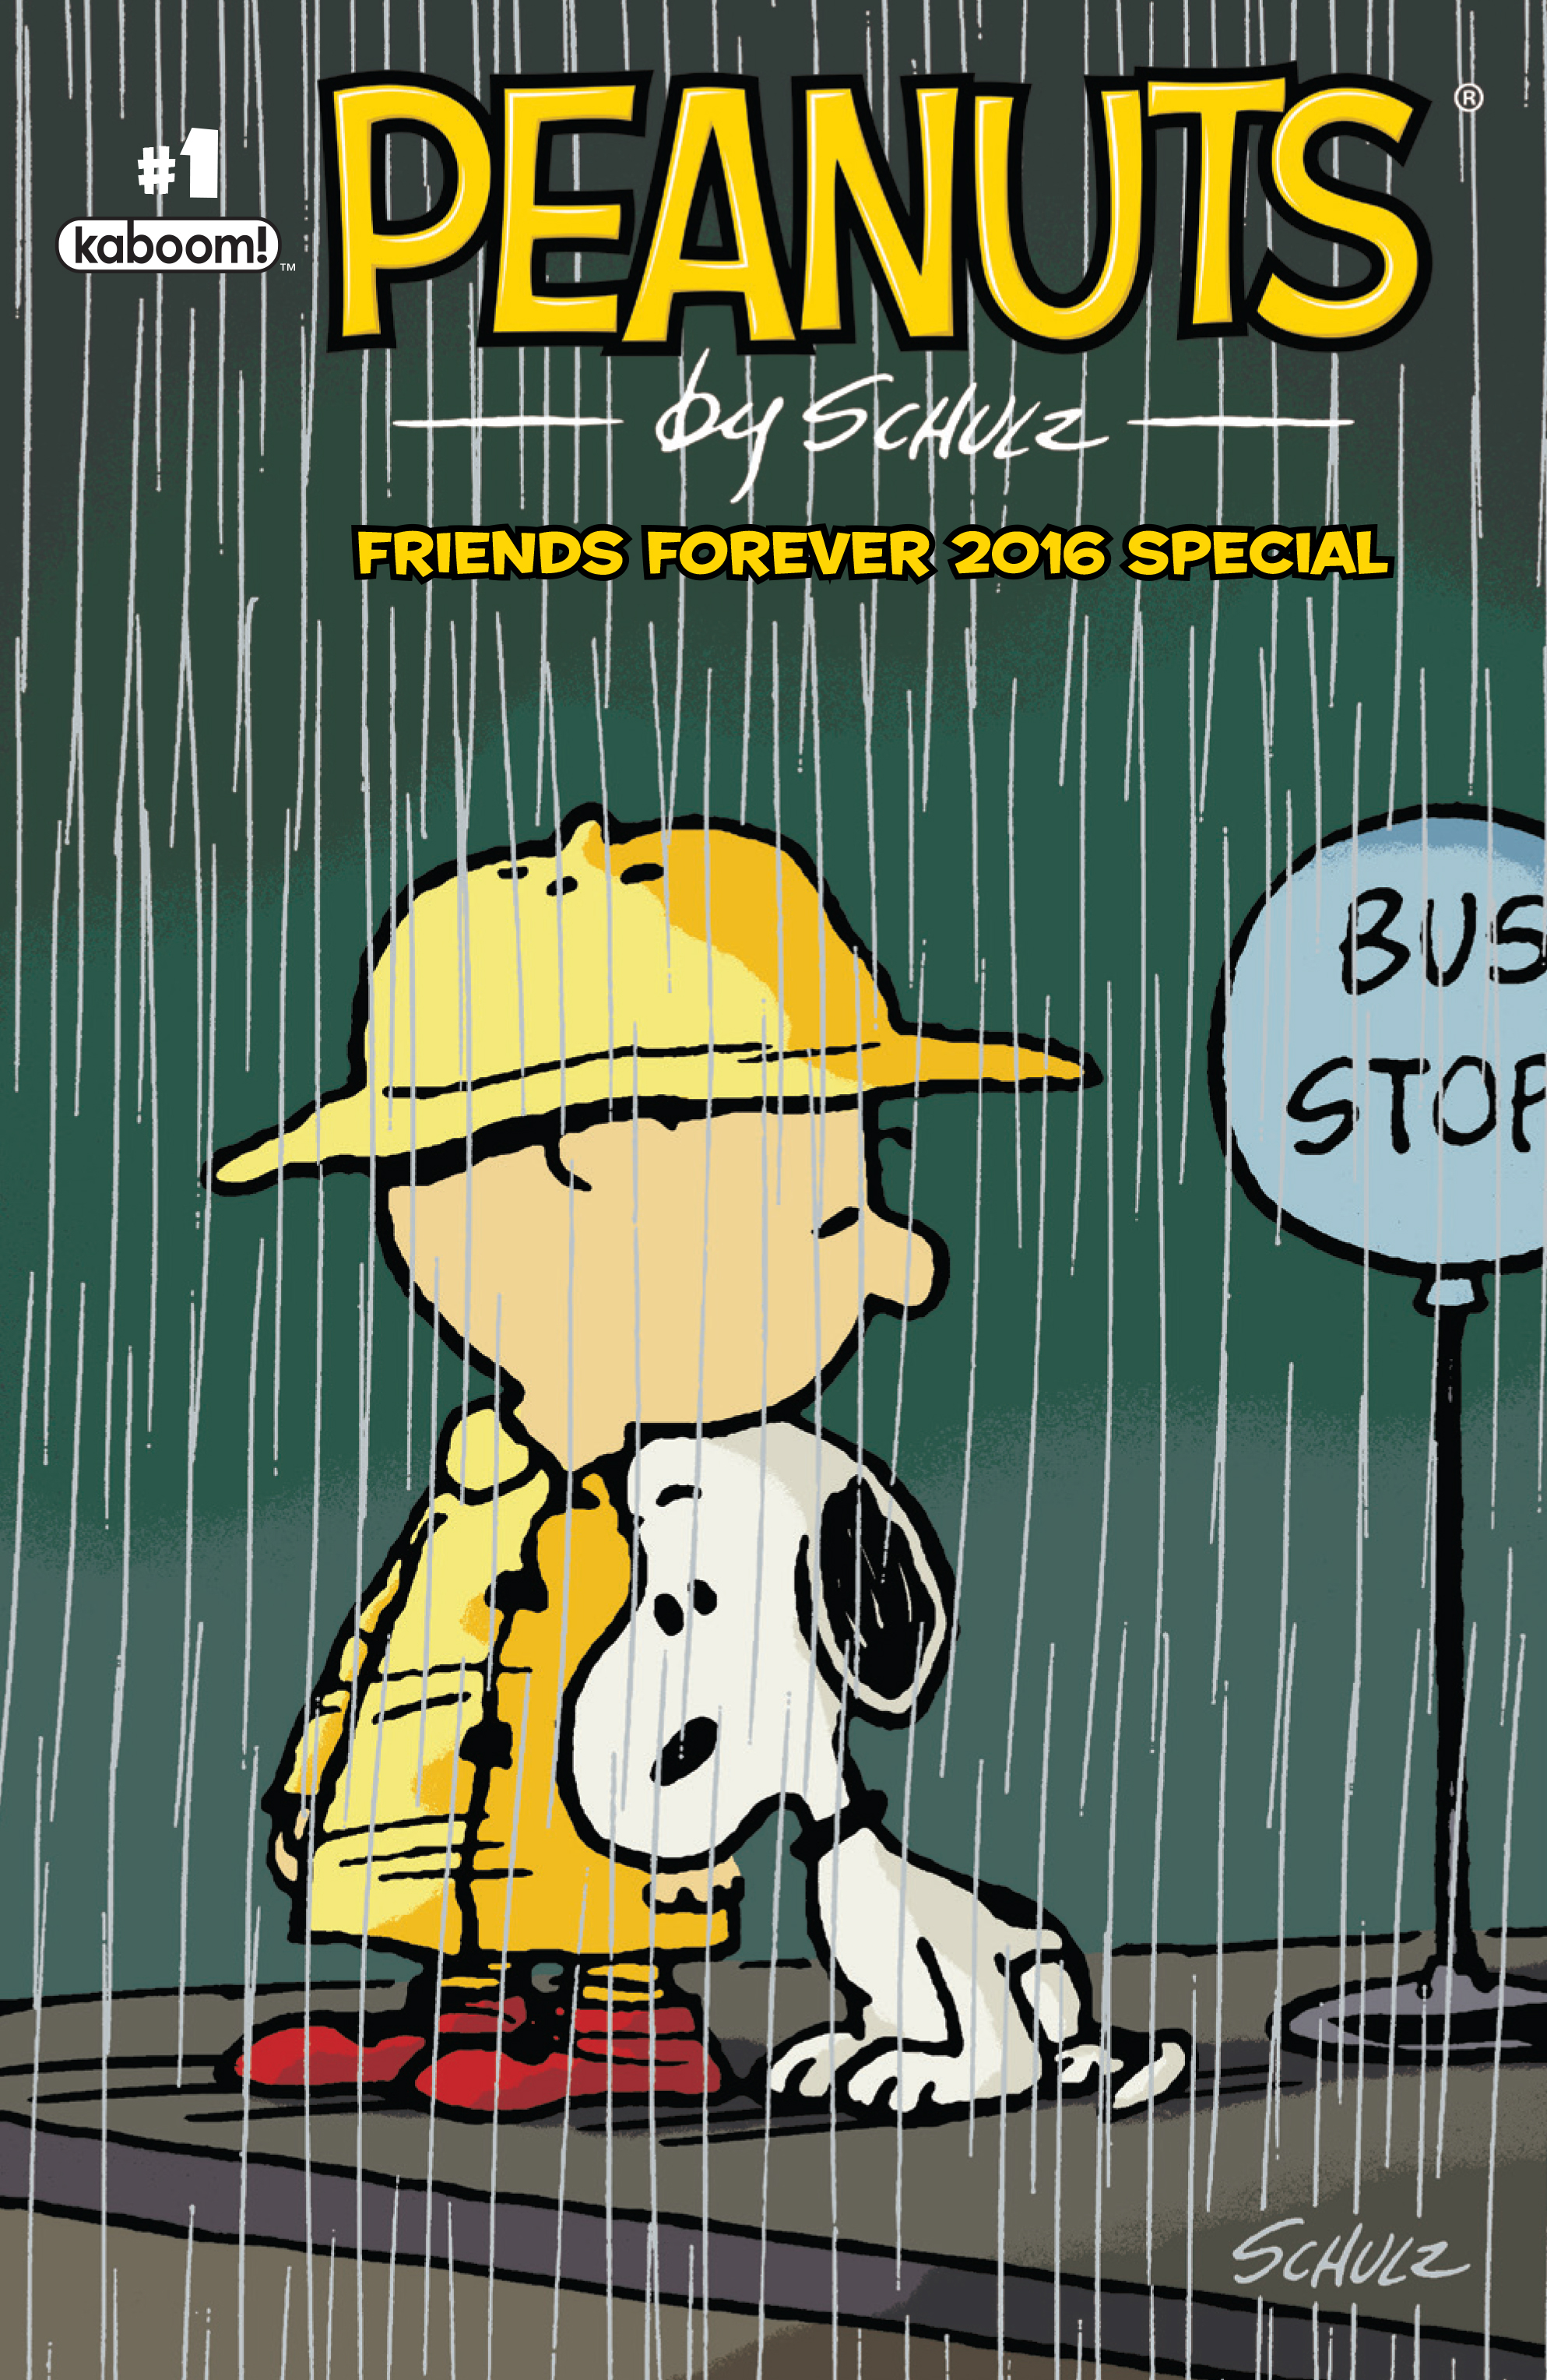 PEANUTS FRIENDS FOREVER 2016 SPECIAL #1